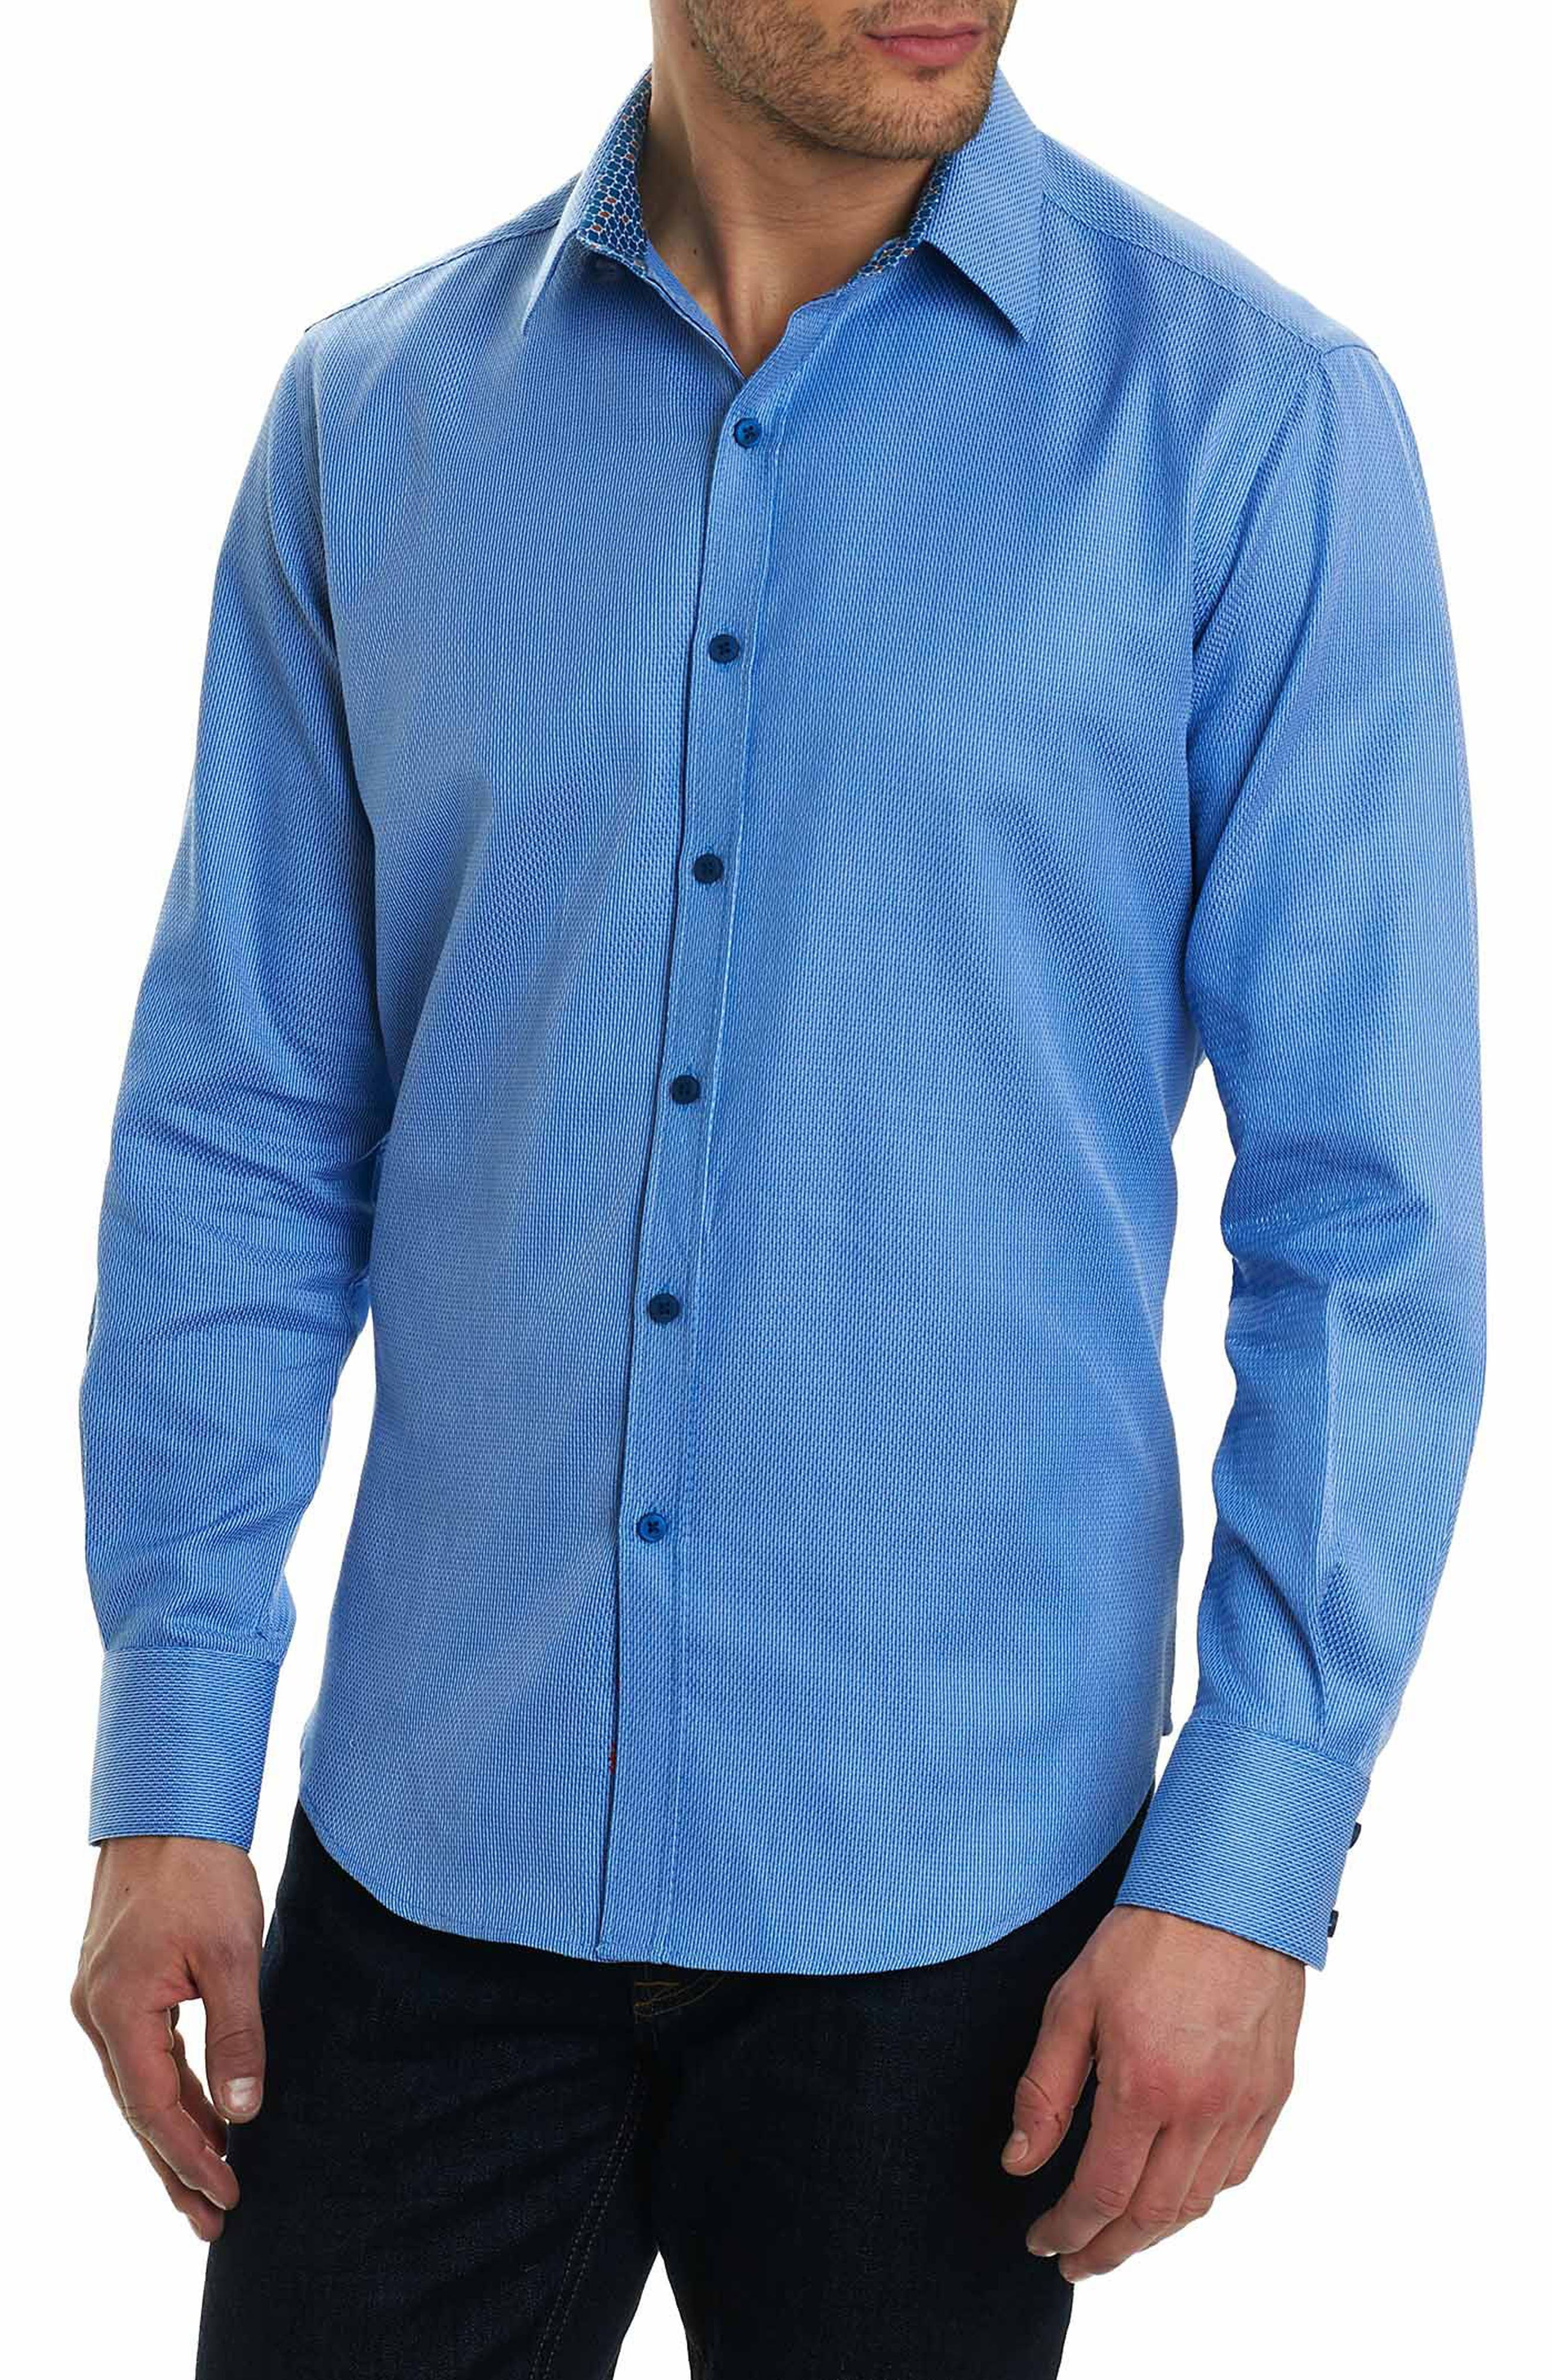 Main Image - Robert Graham Jobson Classic Fit Sport Shirt